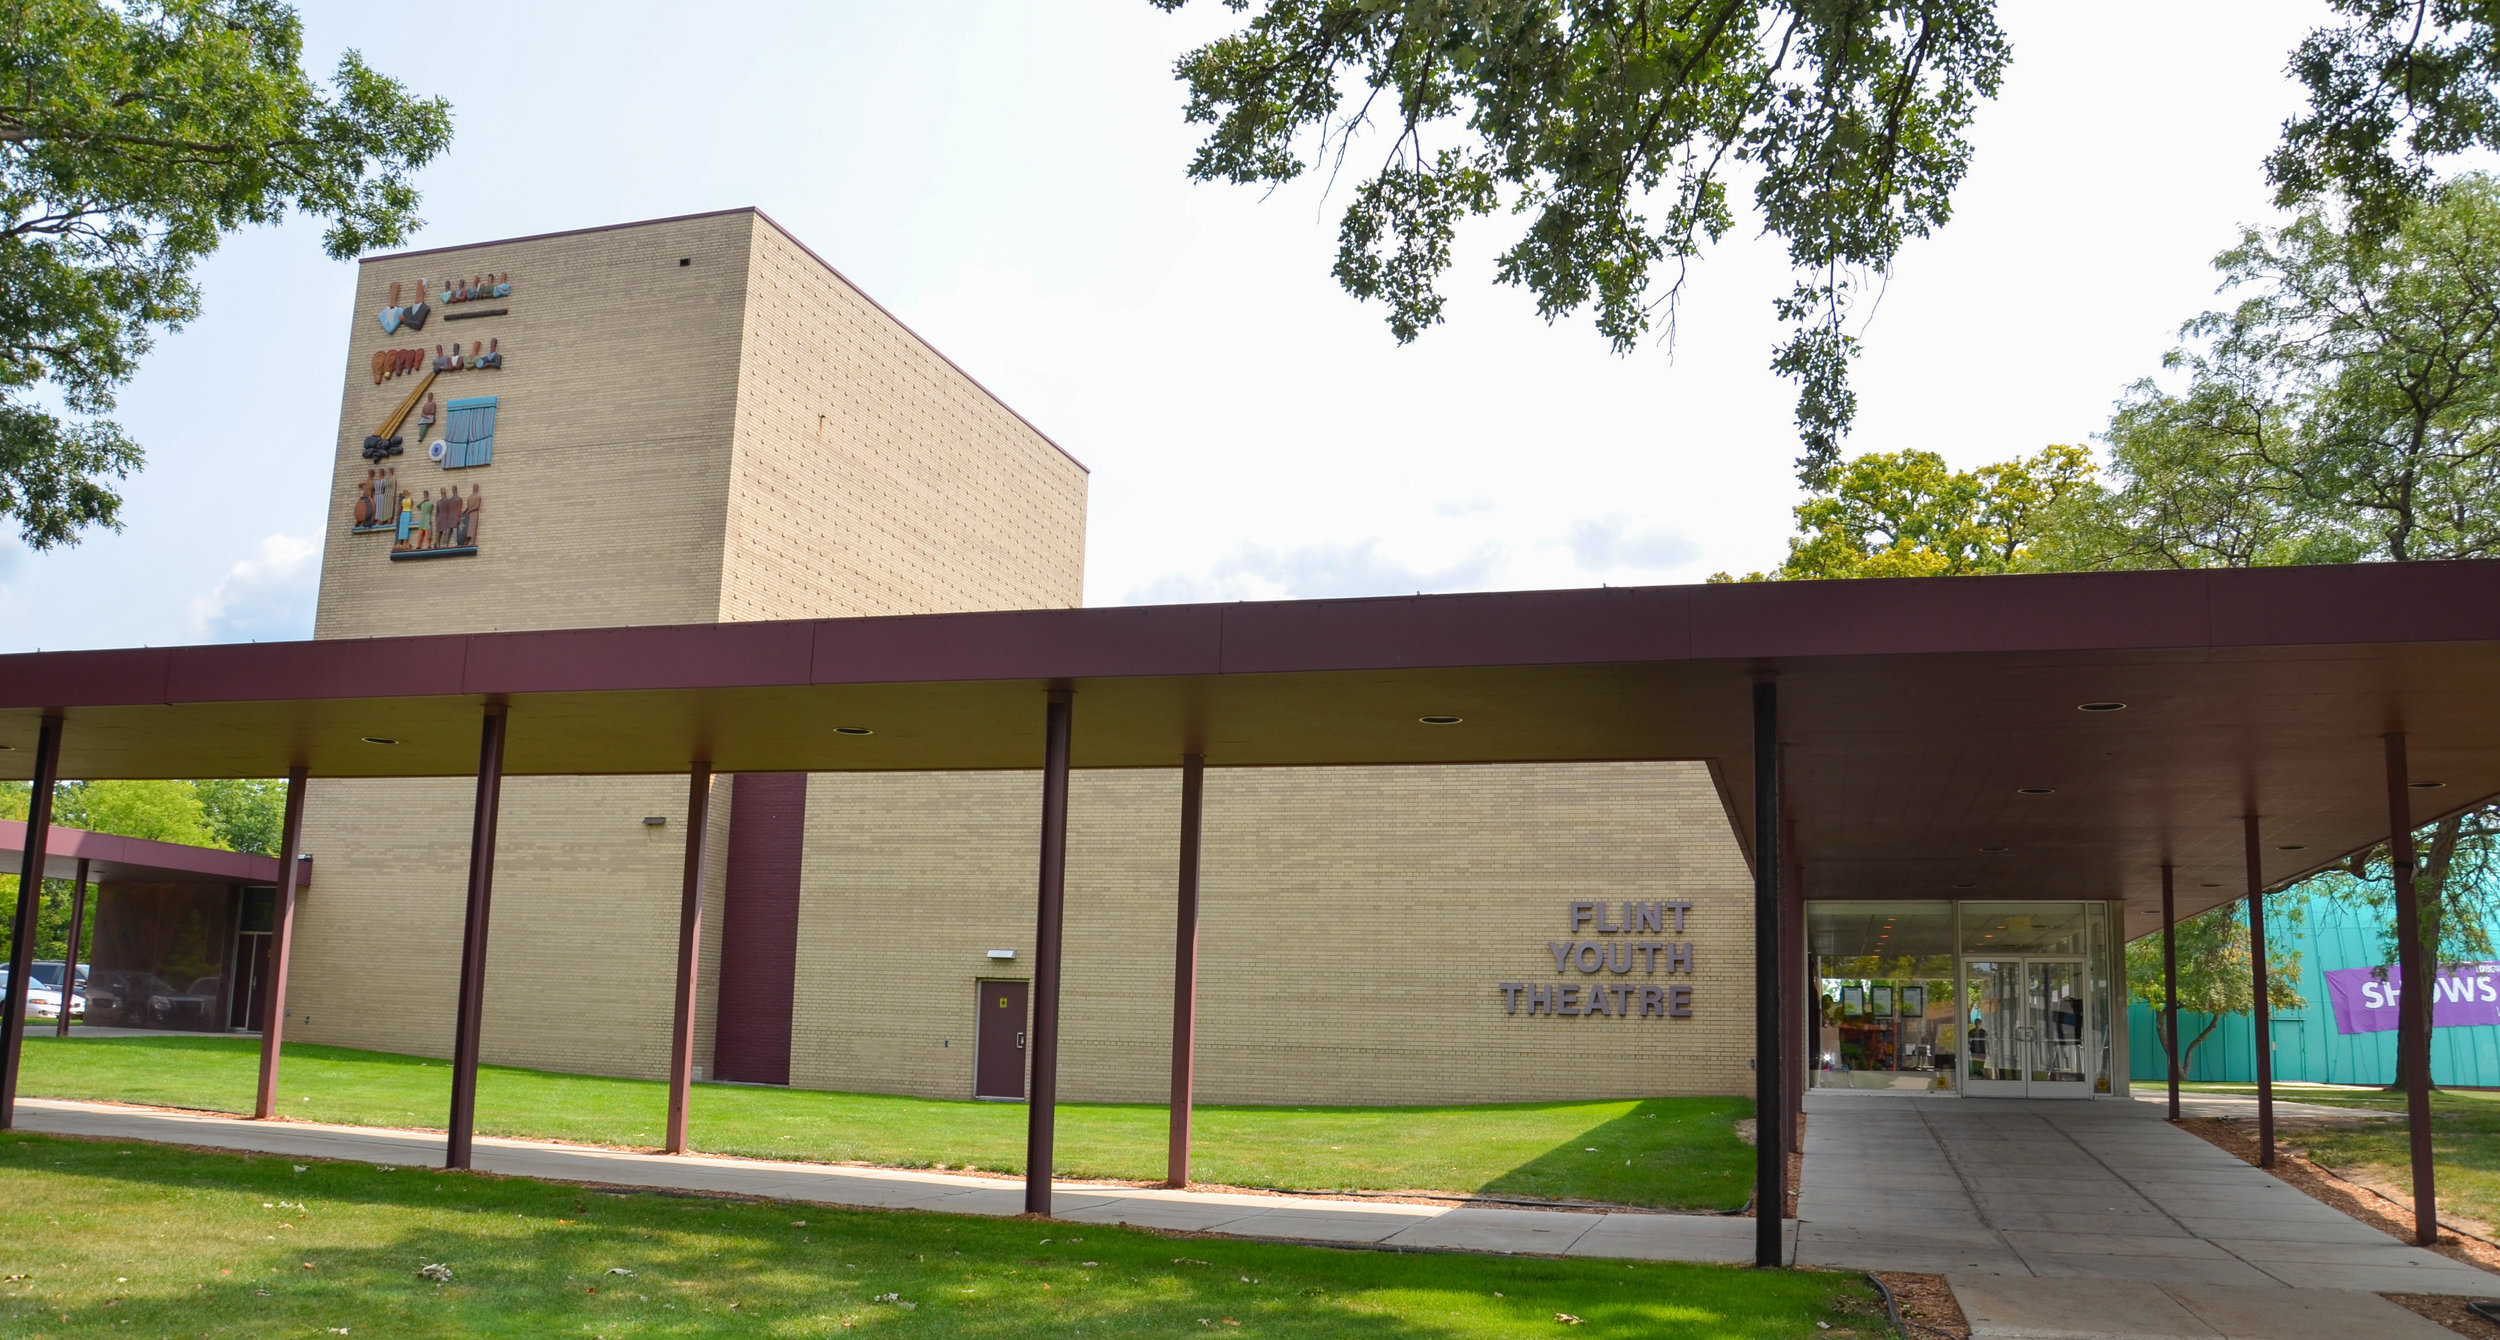 The Flint Youth Theatre, at the Flint Culture center. photo: Susan Montgomery/shutterstock